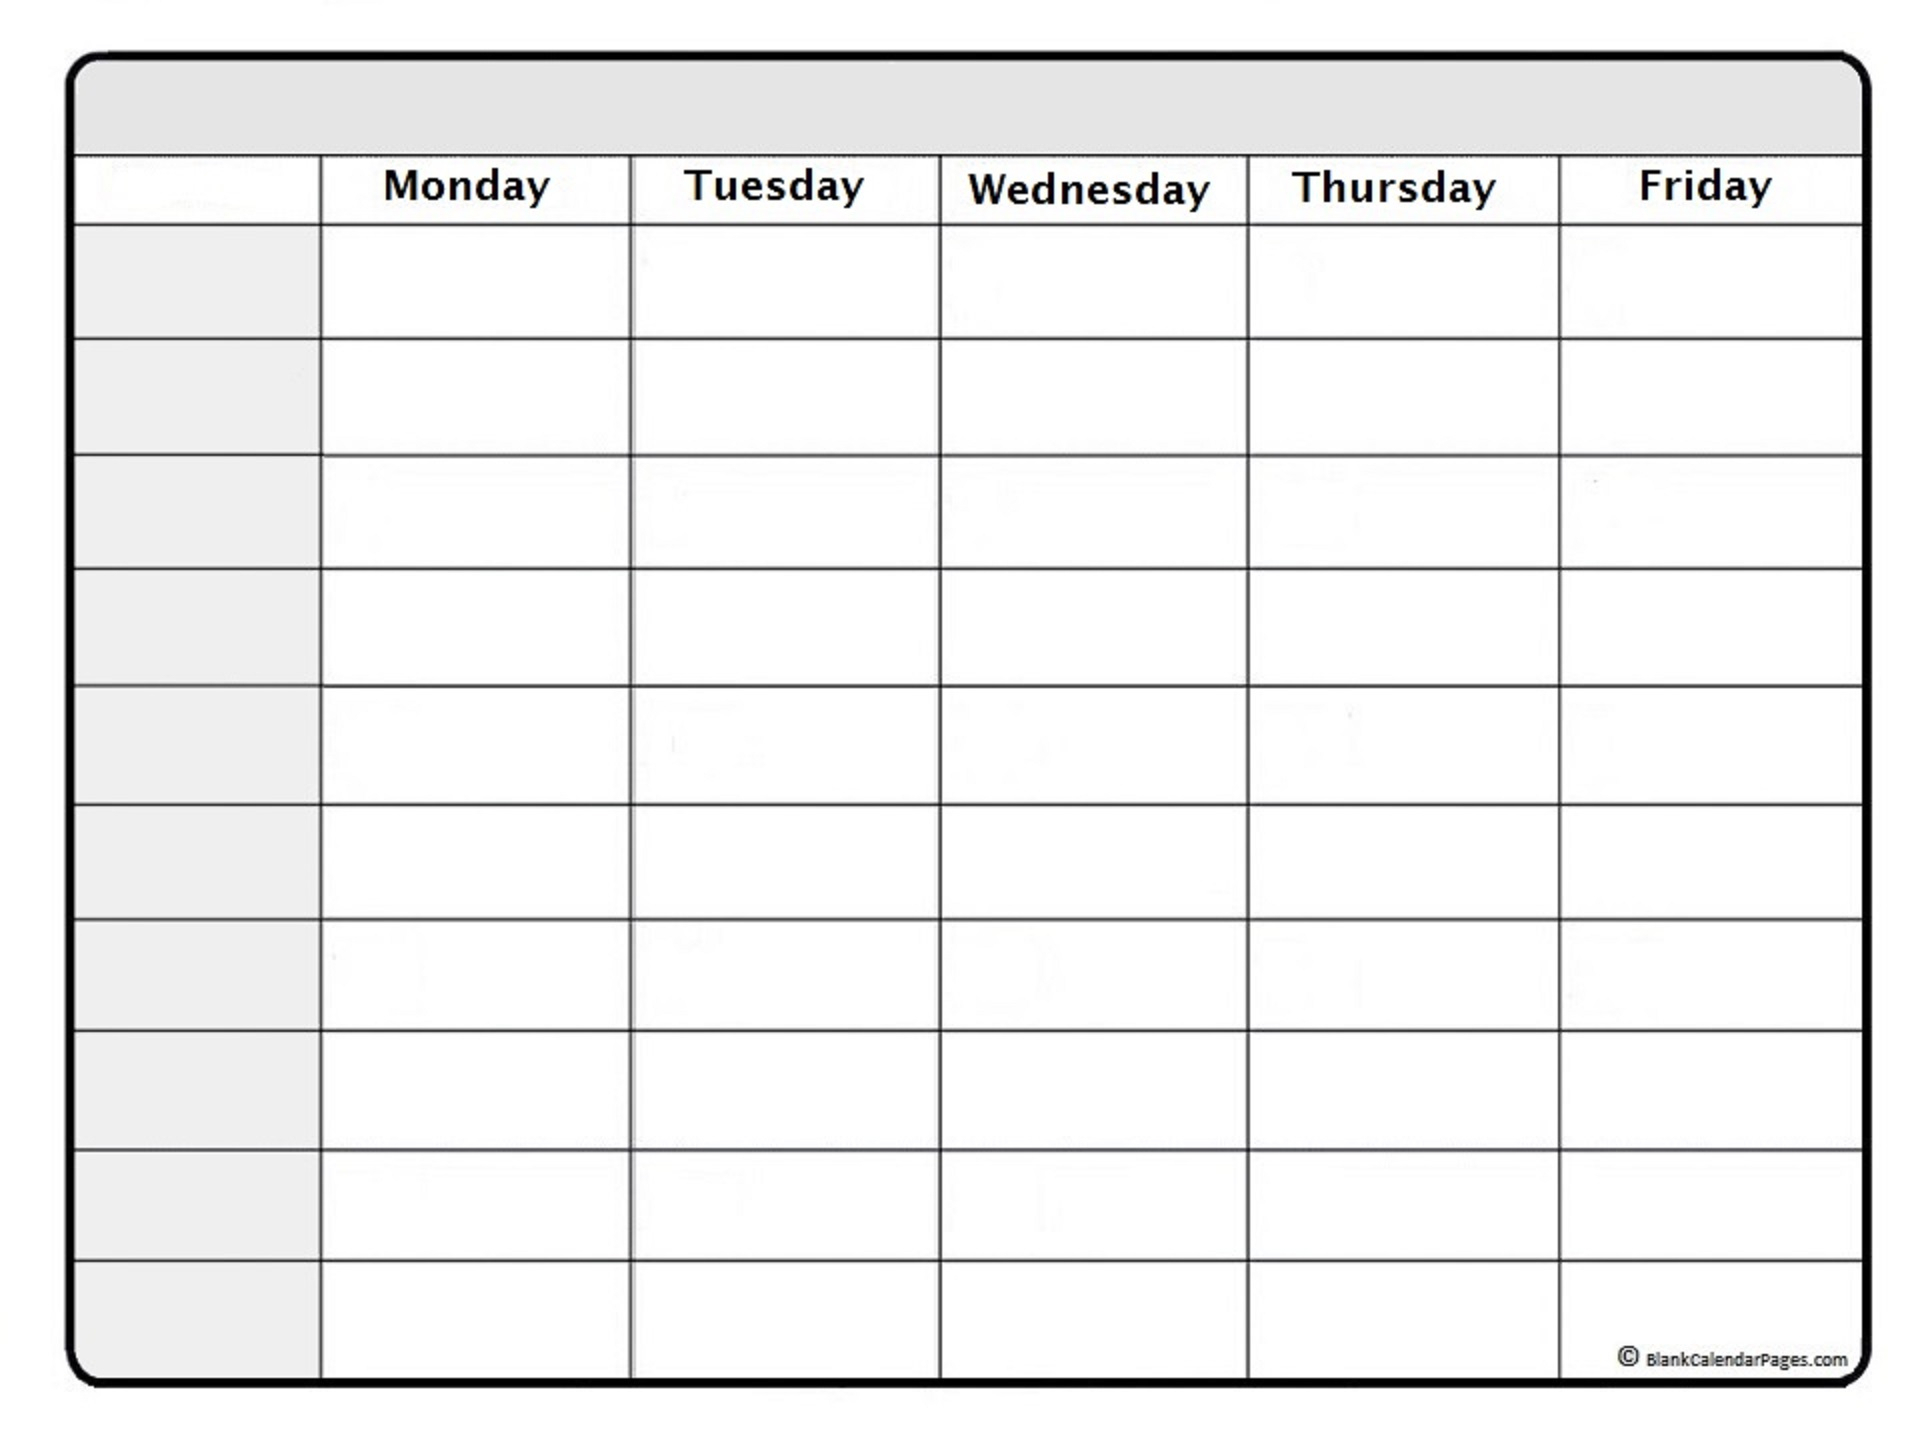 August 2019 Weekly Calendar | August 2019 Weekly Calendar Template pertaining to Printable Weekly Calendar Template